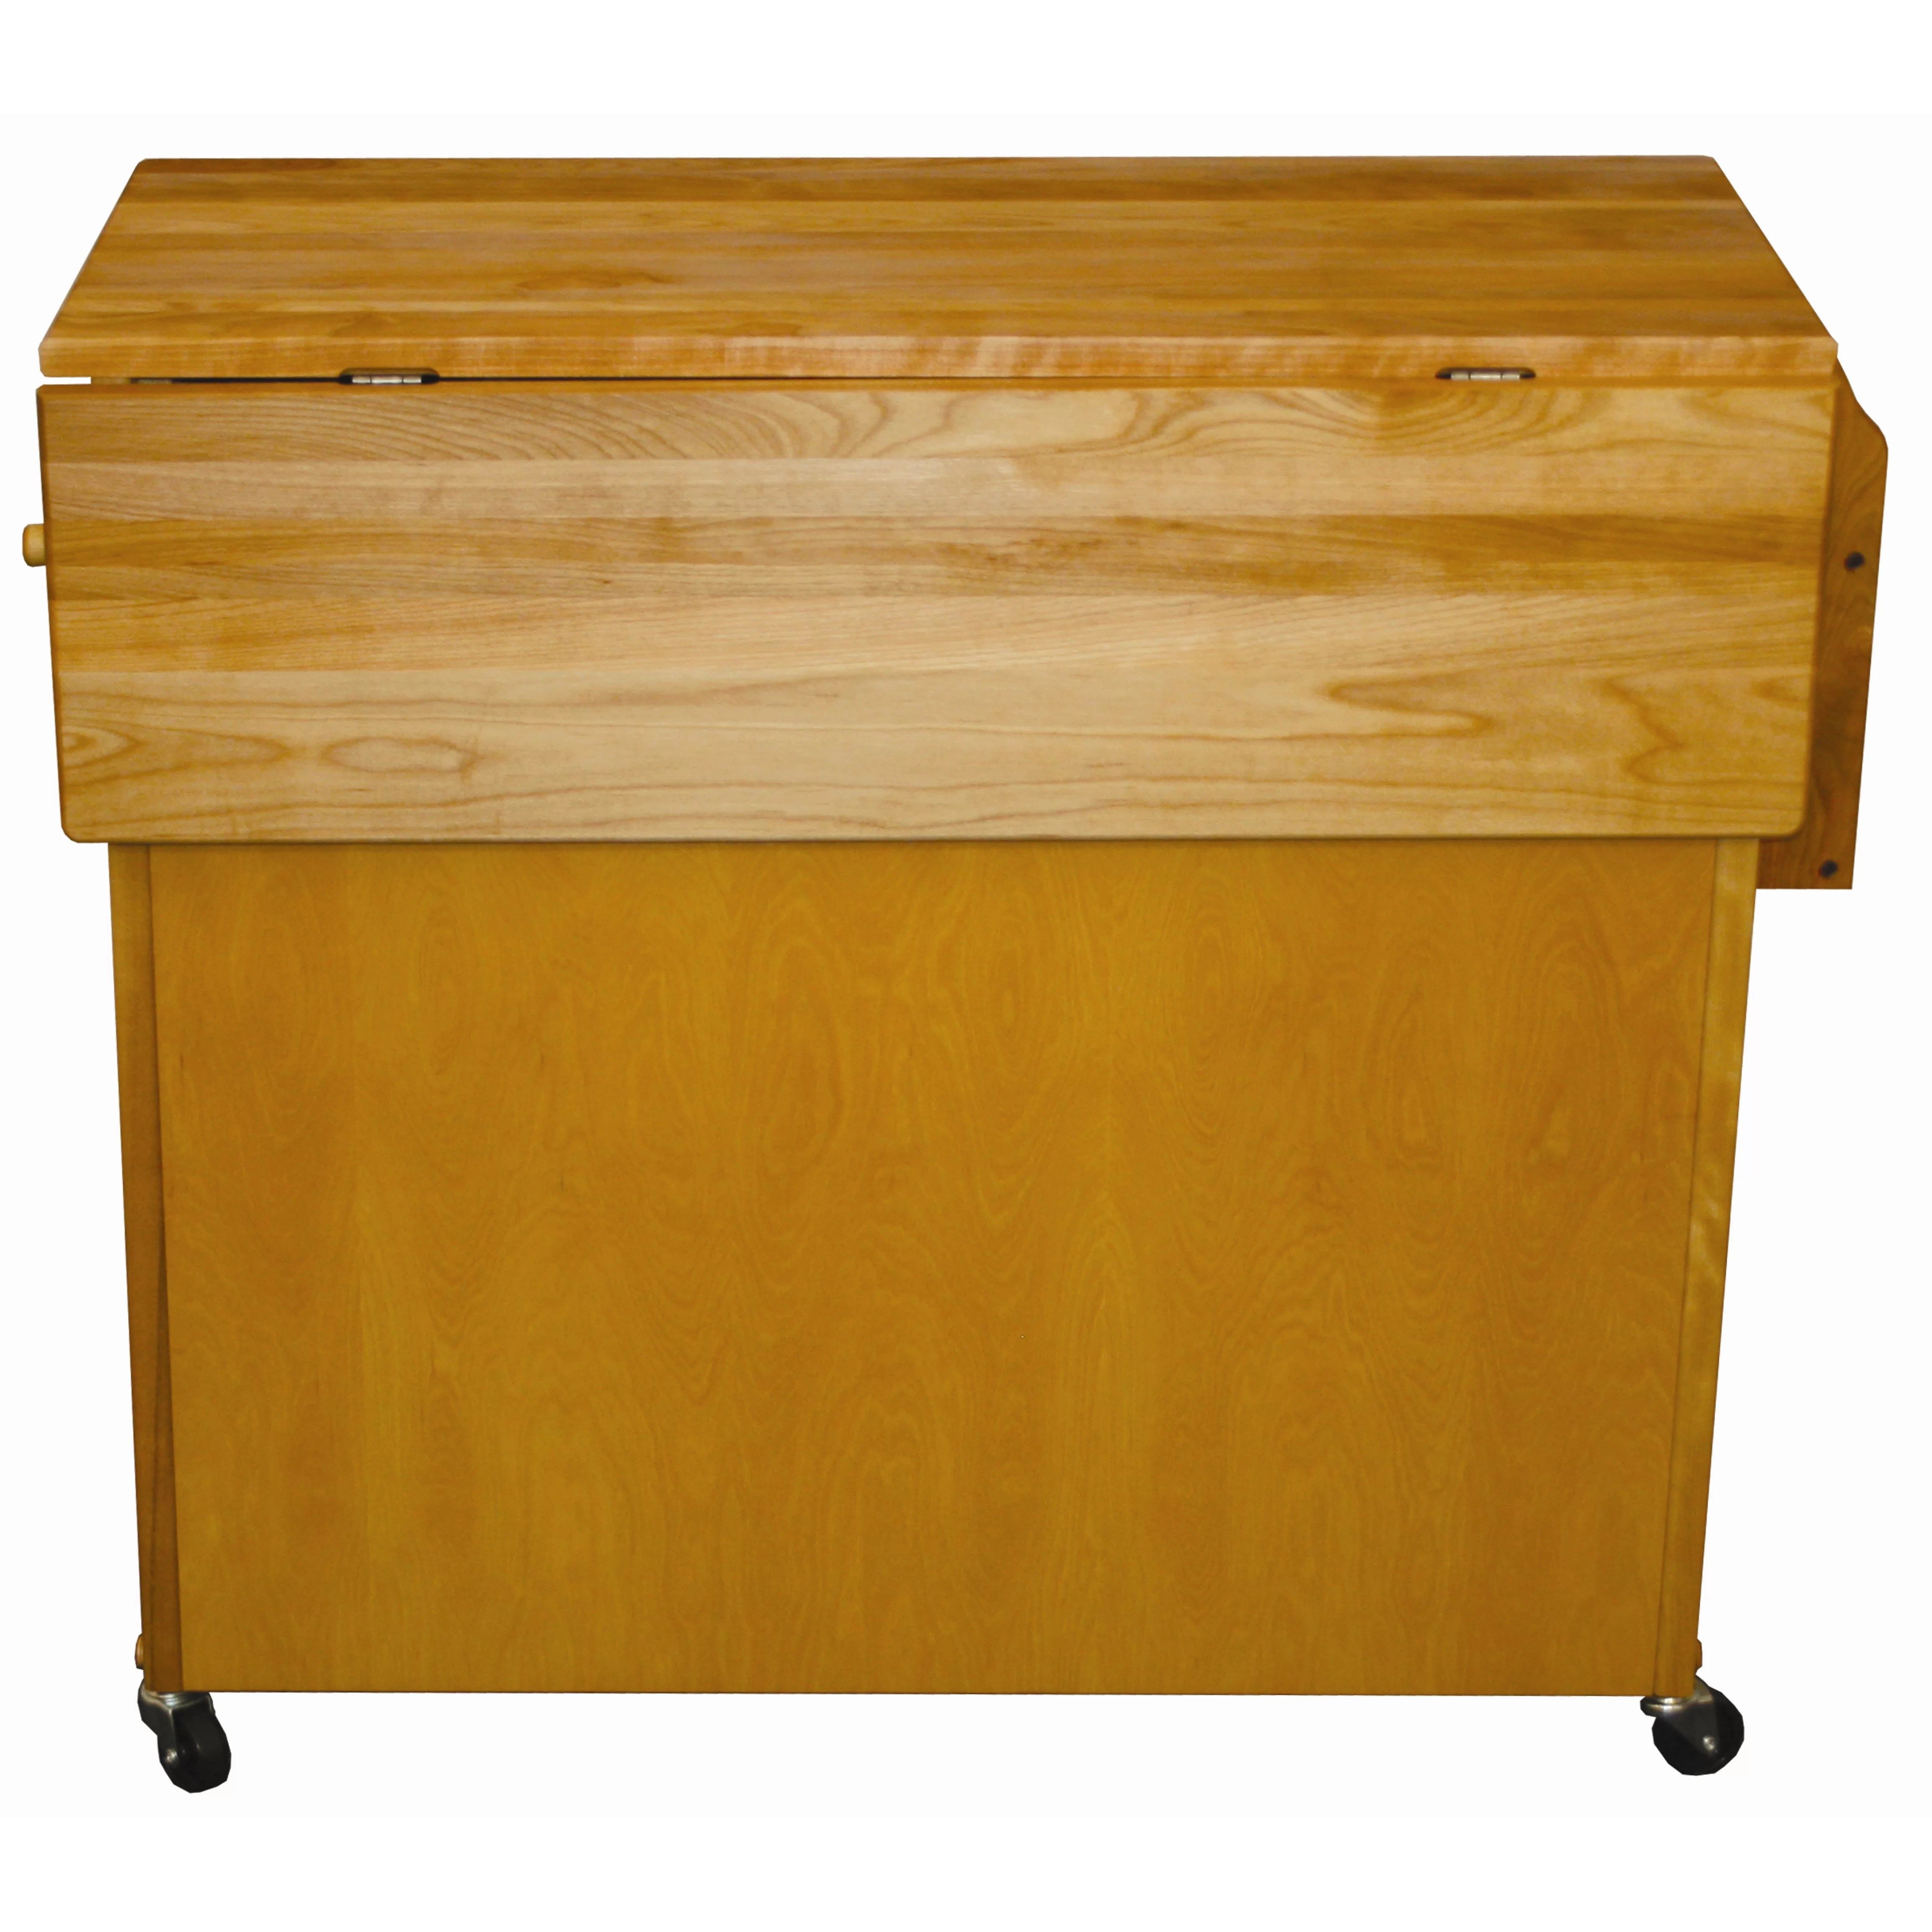 catskill craftsmen kitchen island home depot canada mid size with wood top